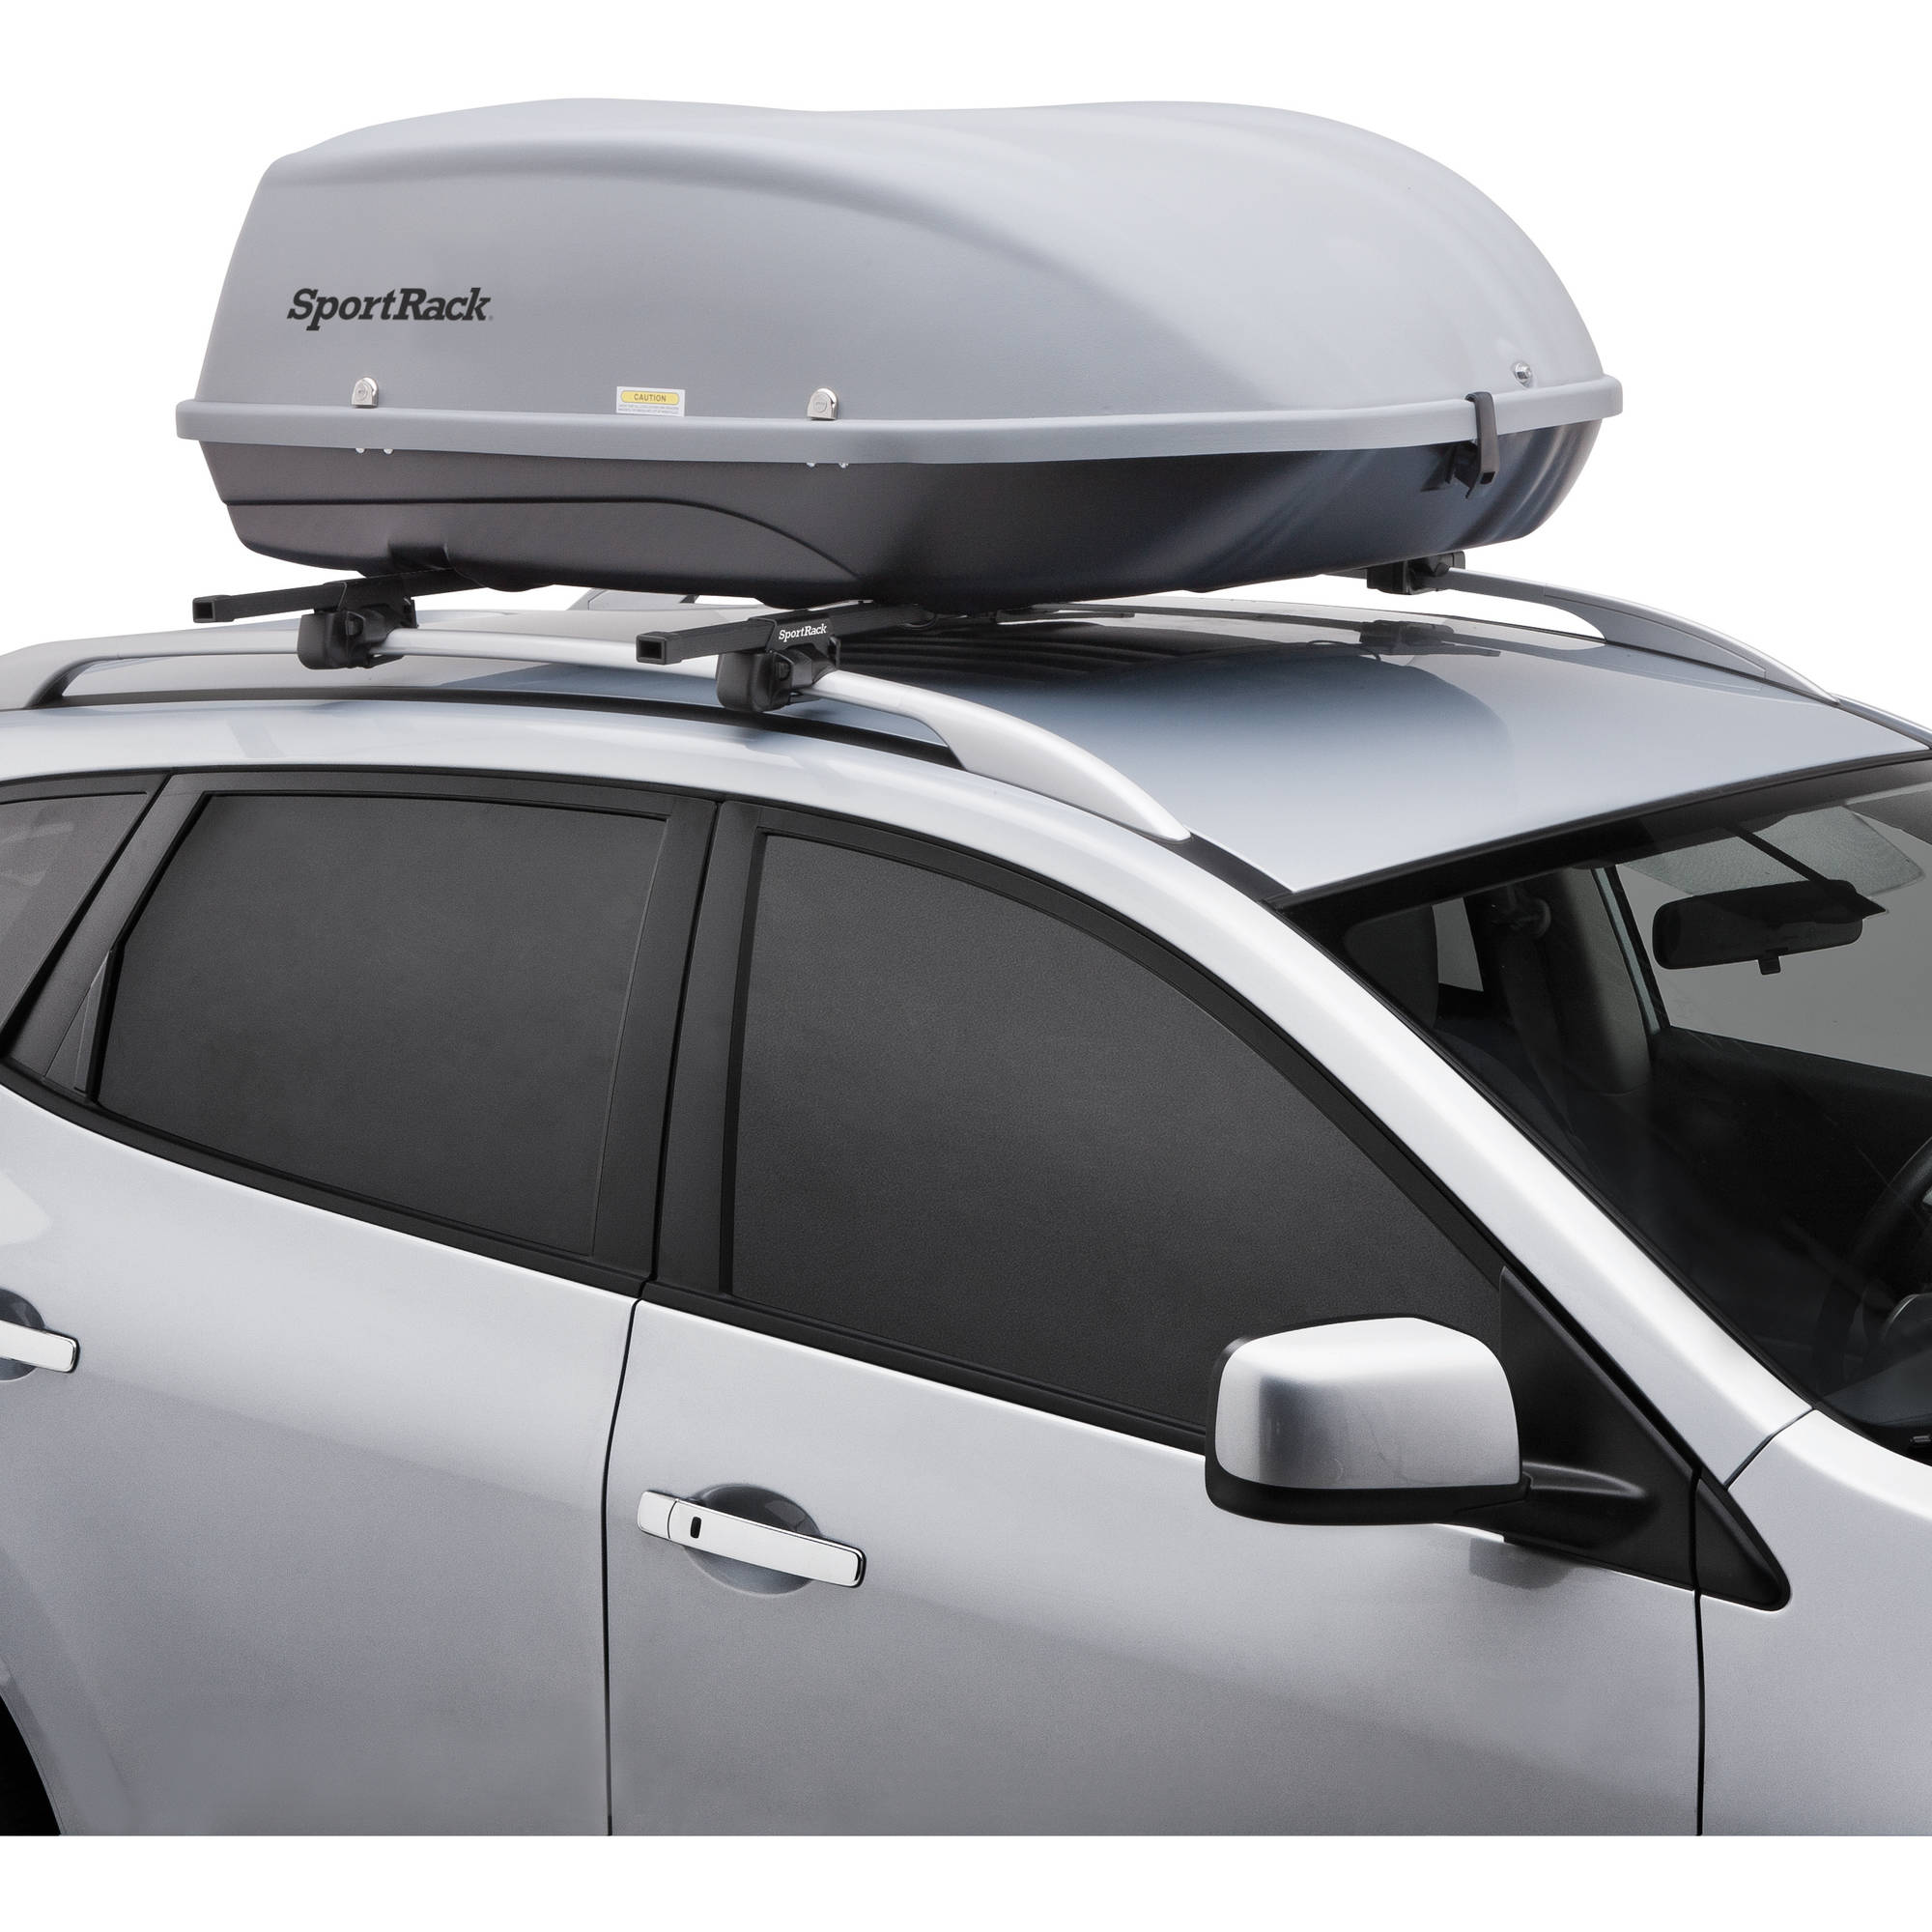 Awesome SportRack SR7095 Skyline XL Roof Mount Cargo Box, 18 Cubic Feet, Black  (Assembly Required)   Walmart.com